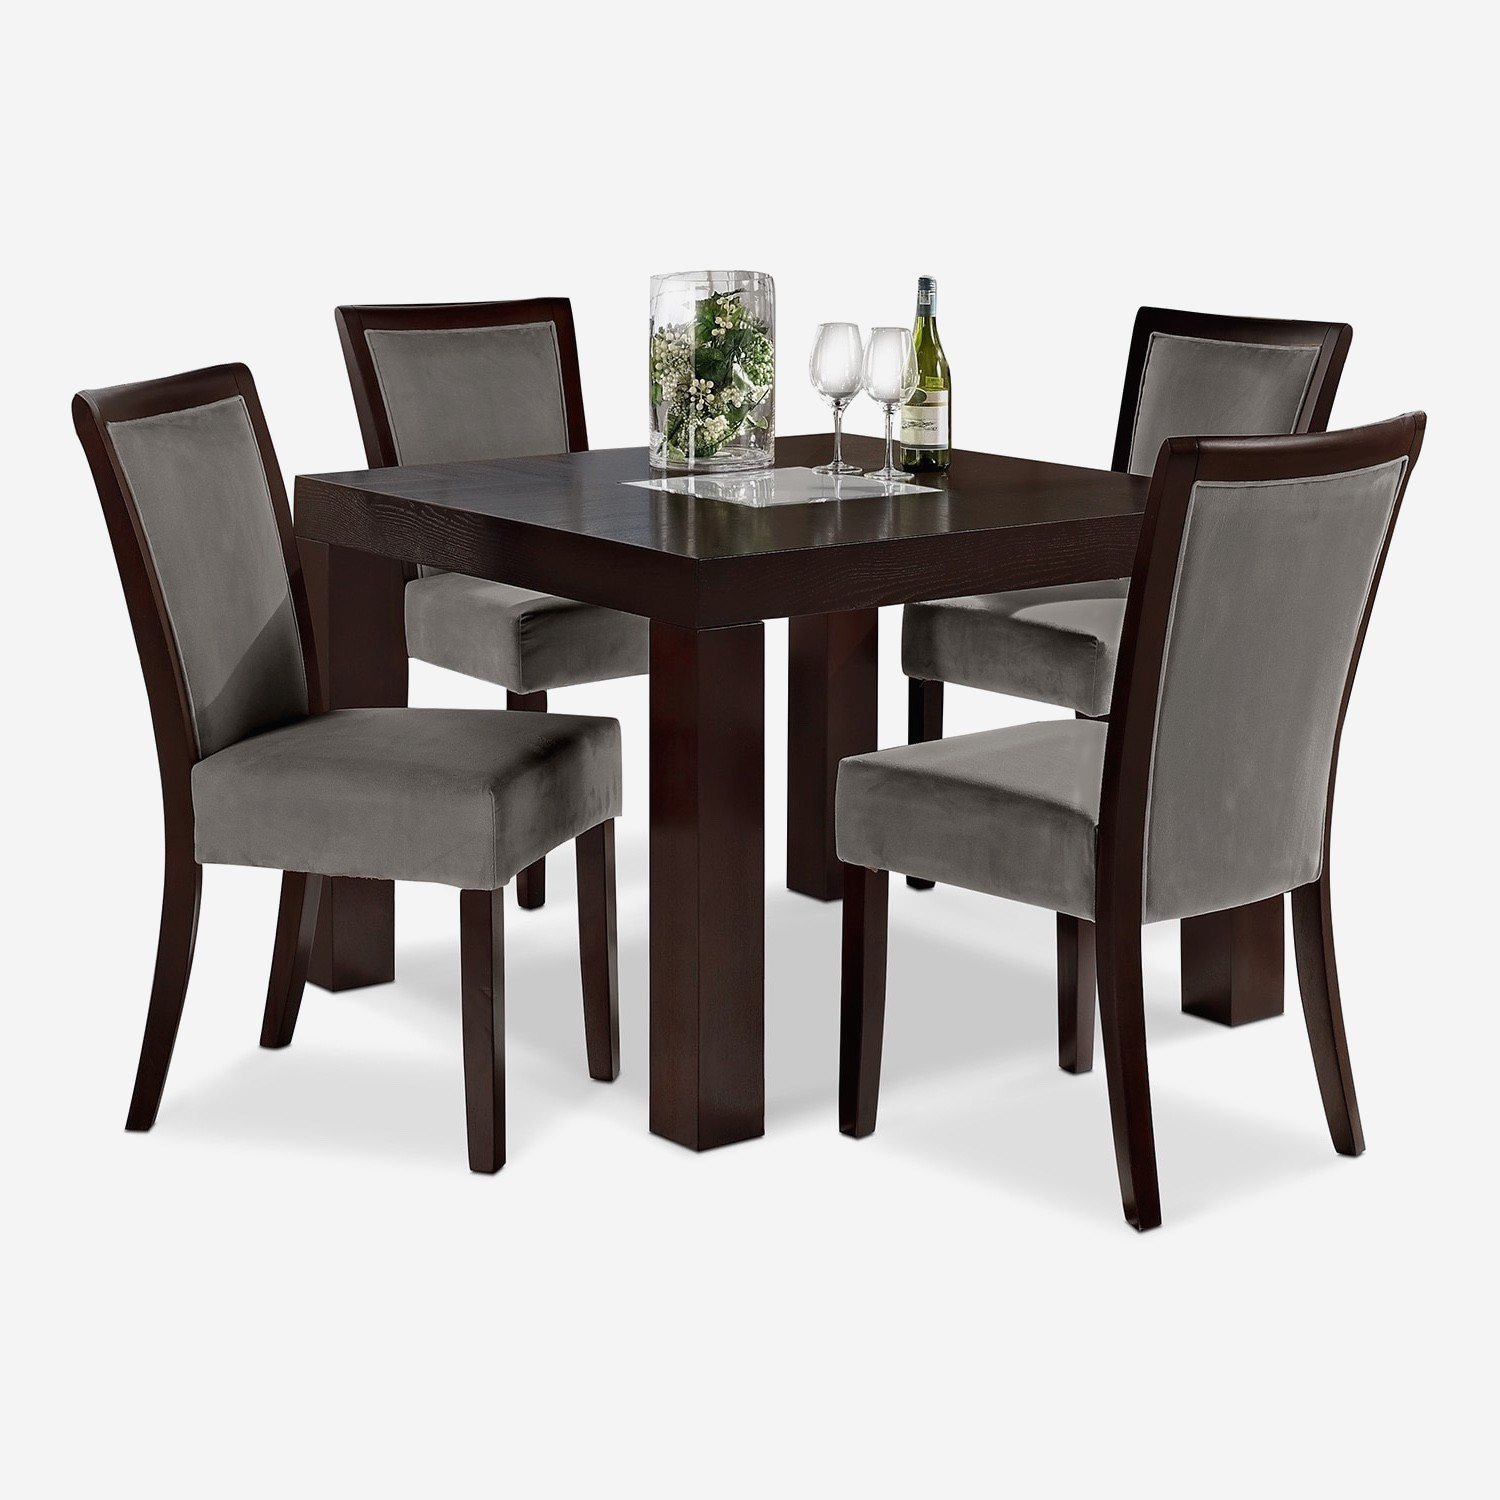 Cheap Dinner Tables  Cheap Dining Table Sets Under 100